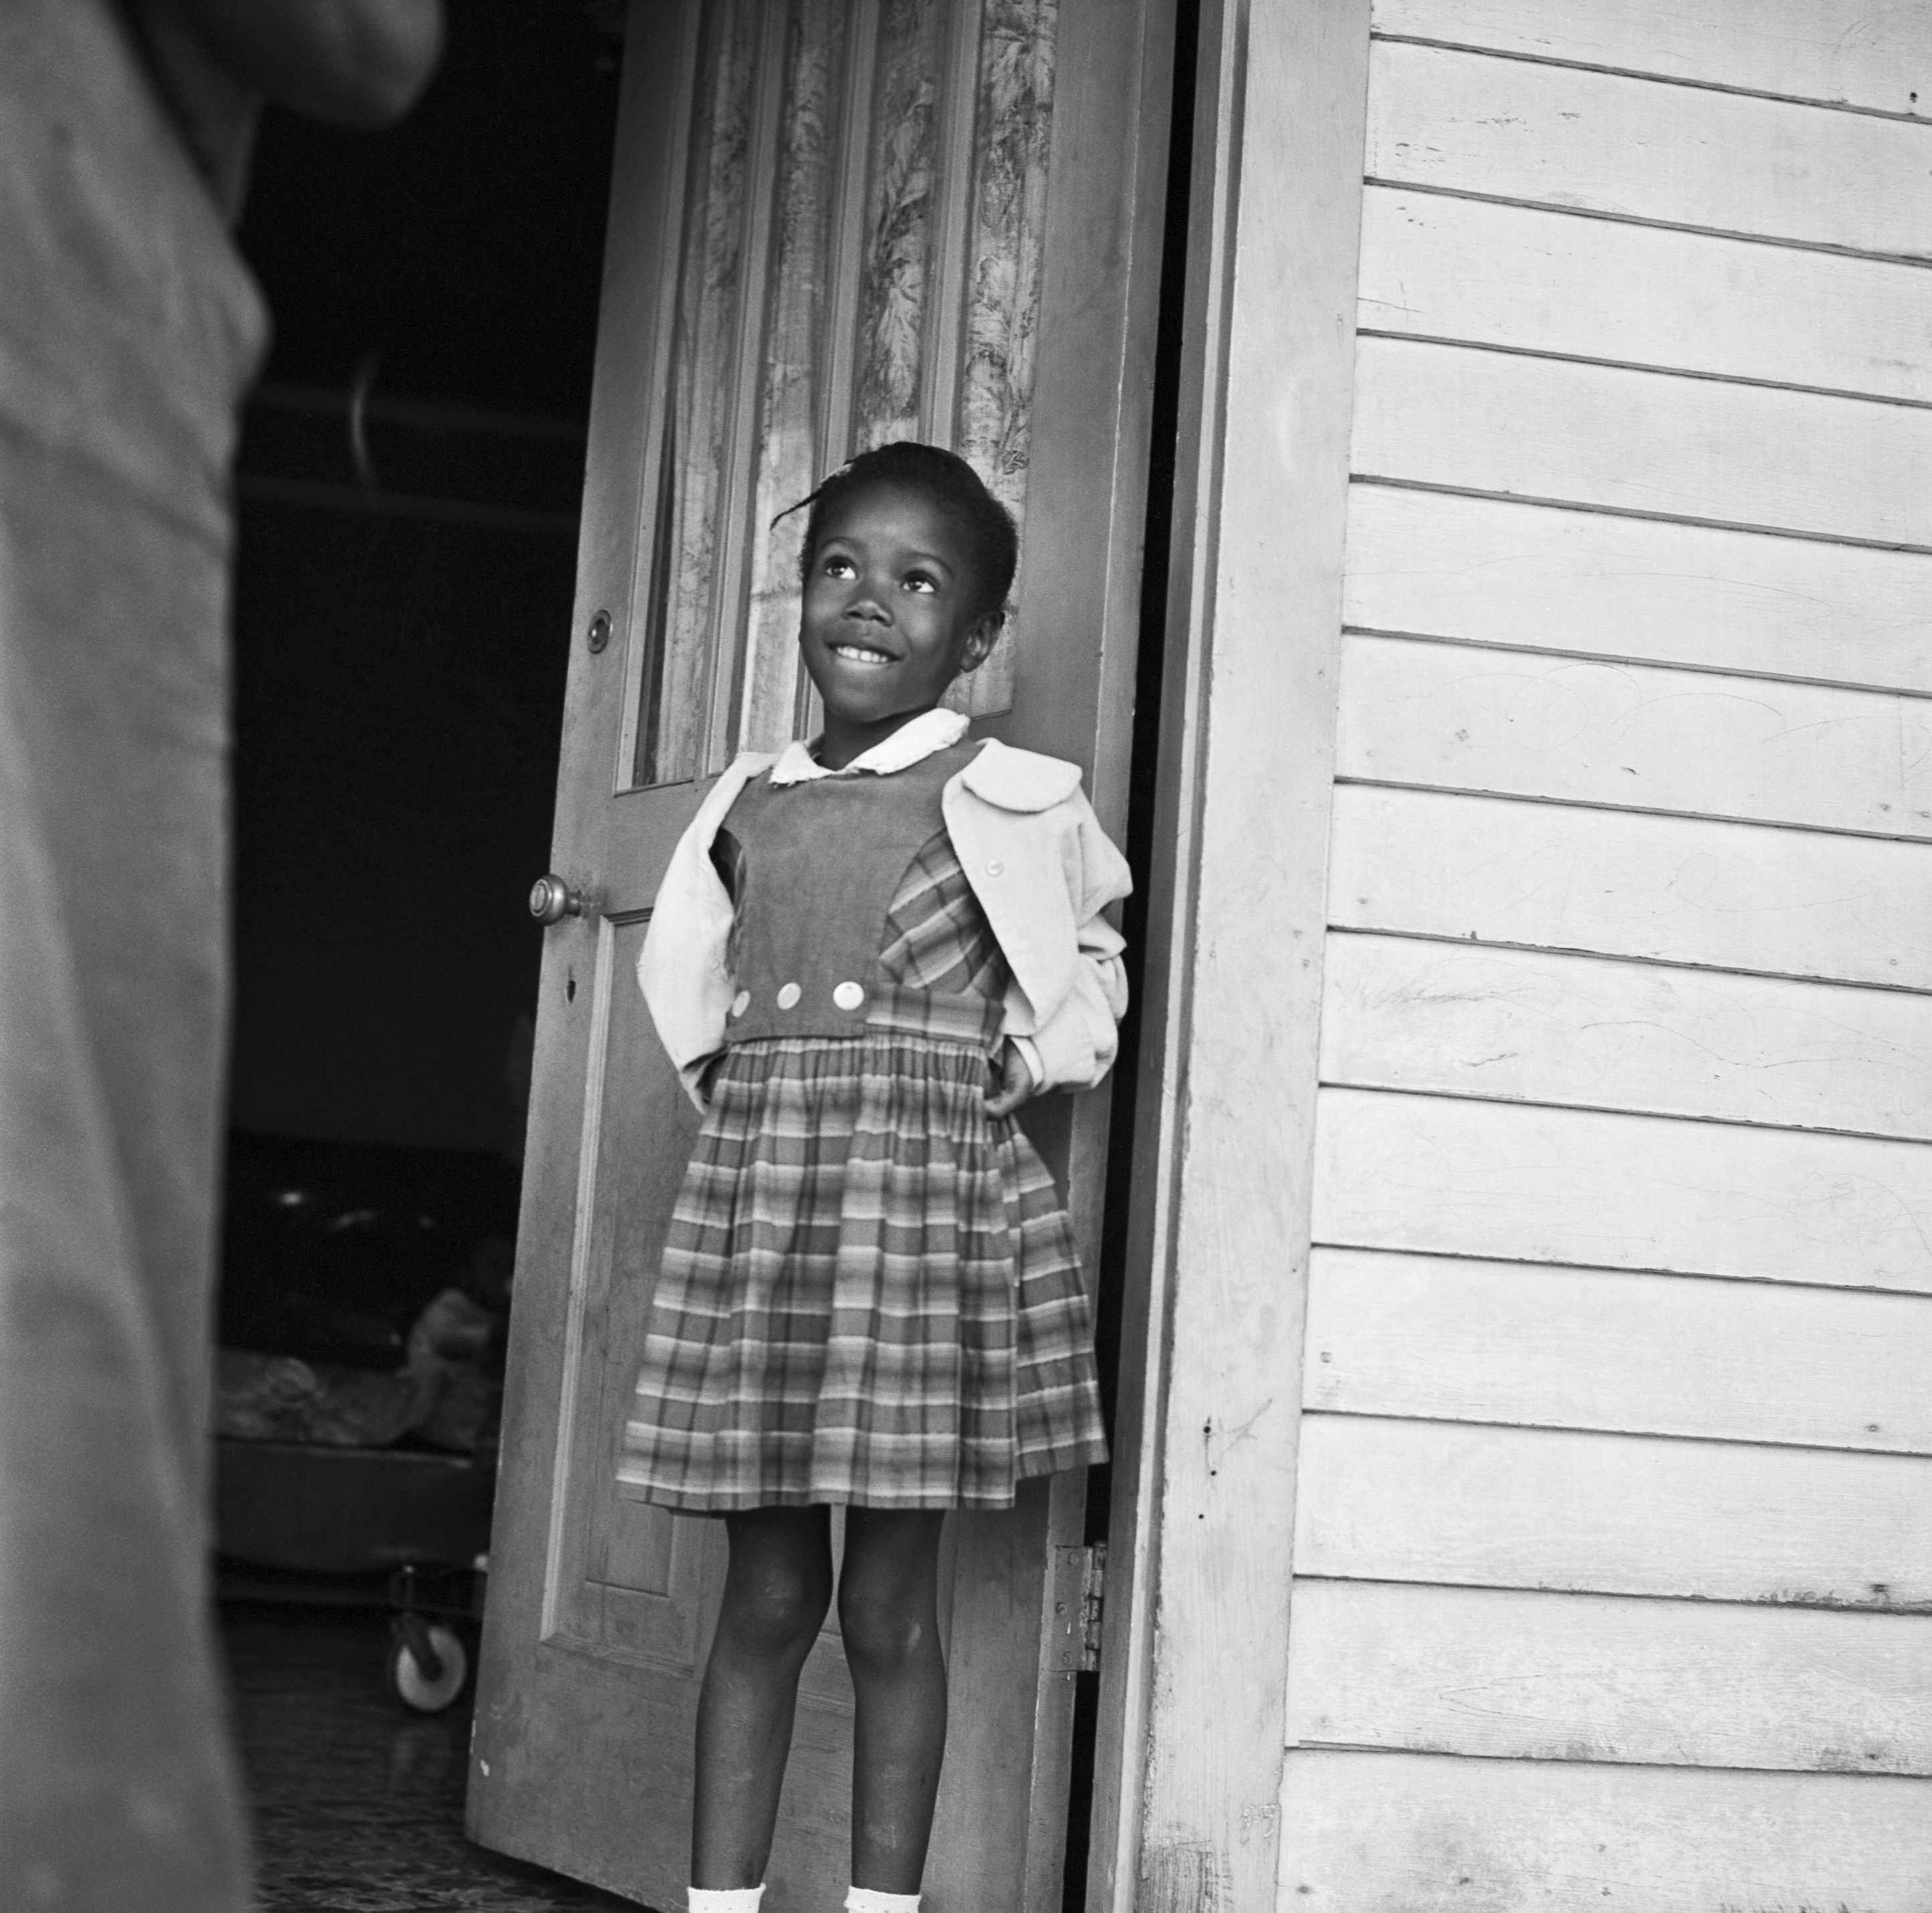 Ruby Bridges And The Civil Rights Movement Slide Show For Grades 3 8